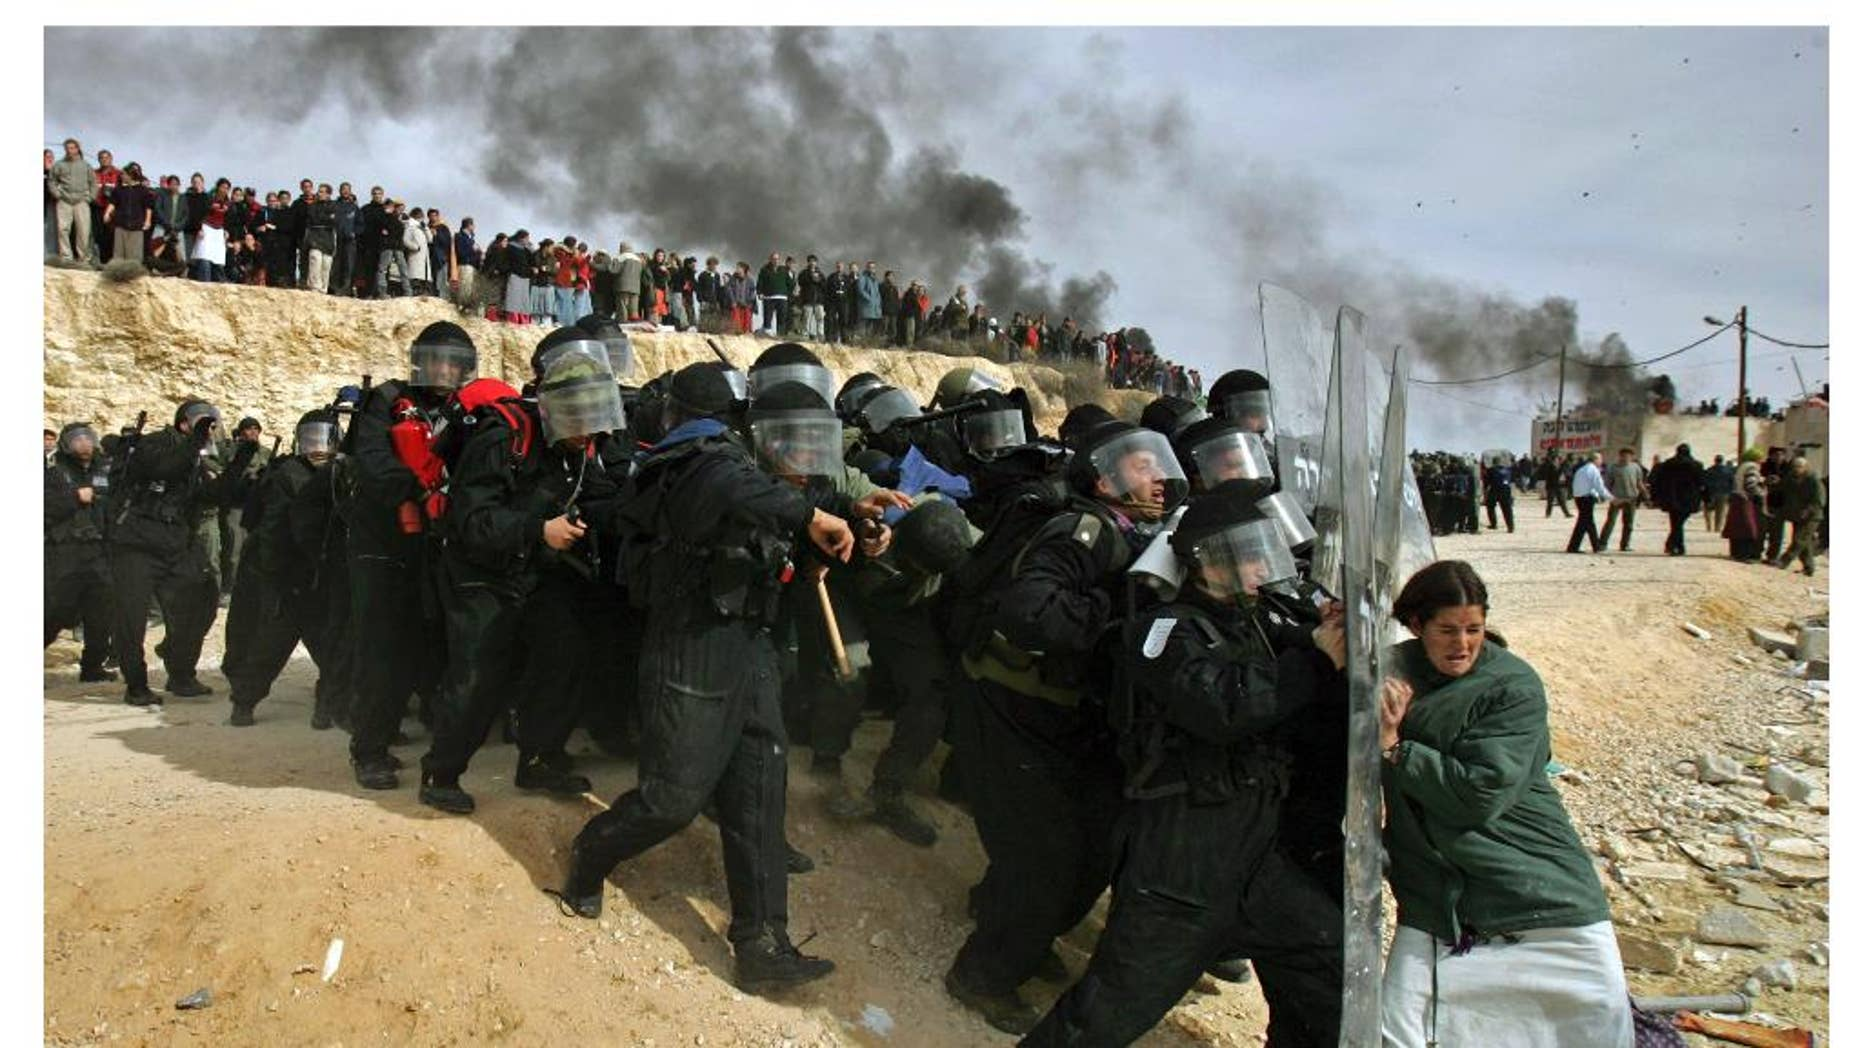 This combination of photos by Oded Balilty shows his Pulitzer Prize winning photograph of Israeli settlers challenging security forces at the West Bank outpost of Amona on Feb. 1, 2006, top, and at bottom Israeli settlers battling eviction from the same outpost exactly eleven years later, on Wednesday, Feb. 1, 2017. (AP Photo/Oded Balilty)